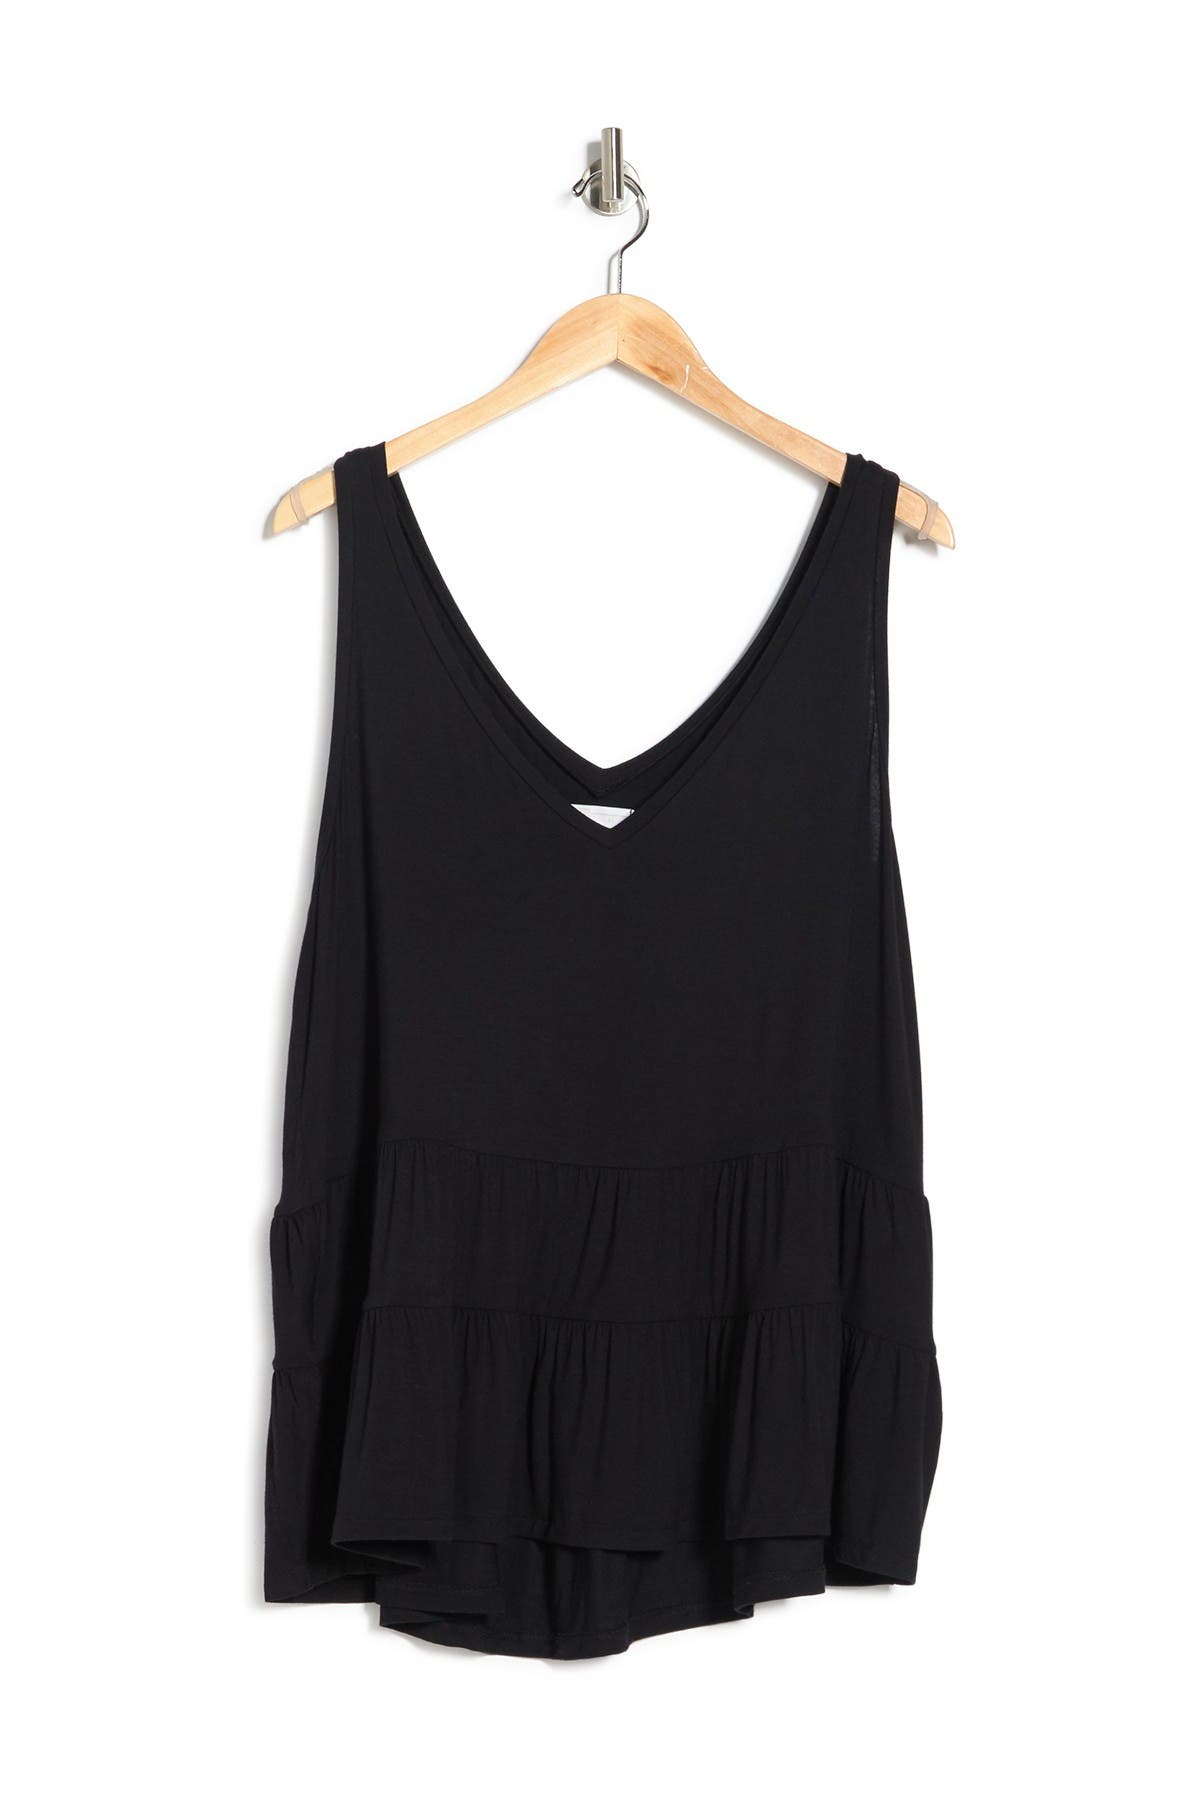 14th & Union Tops DOUBLE V-NECK SLEEVELESS TIERED TOP